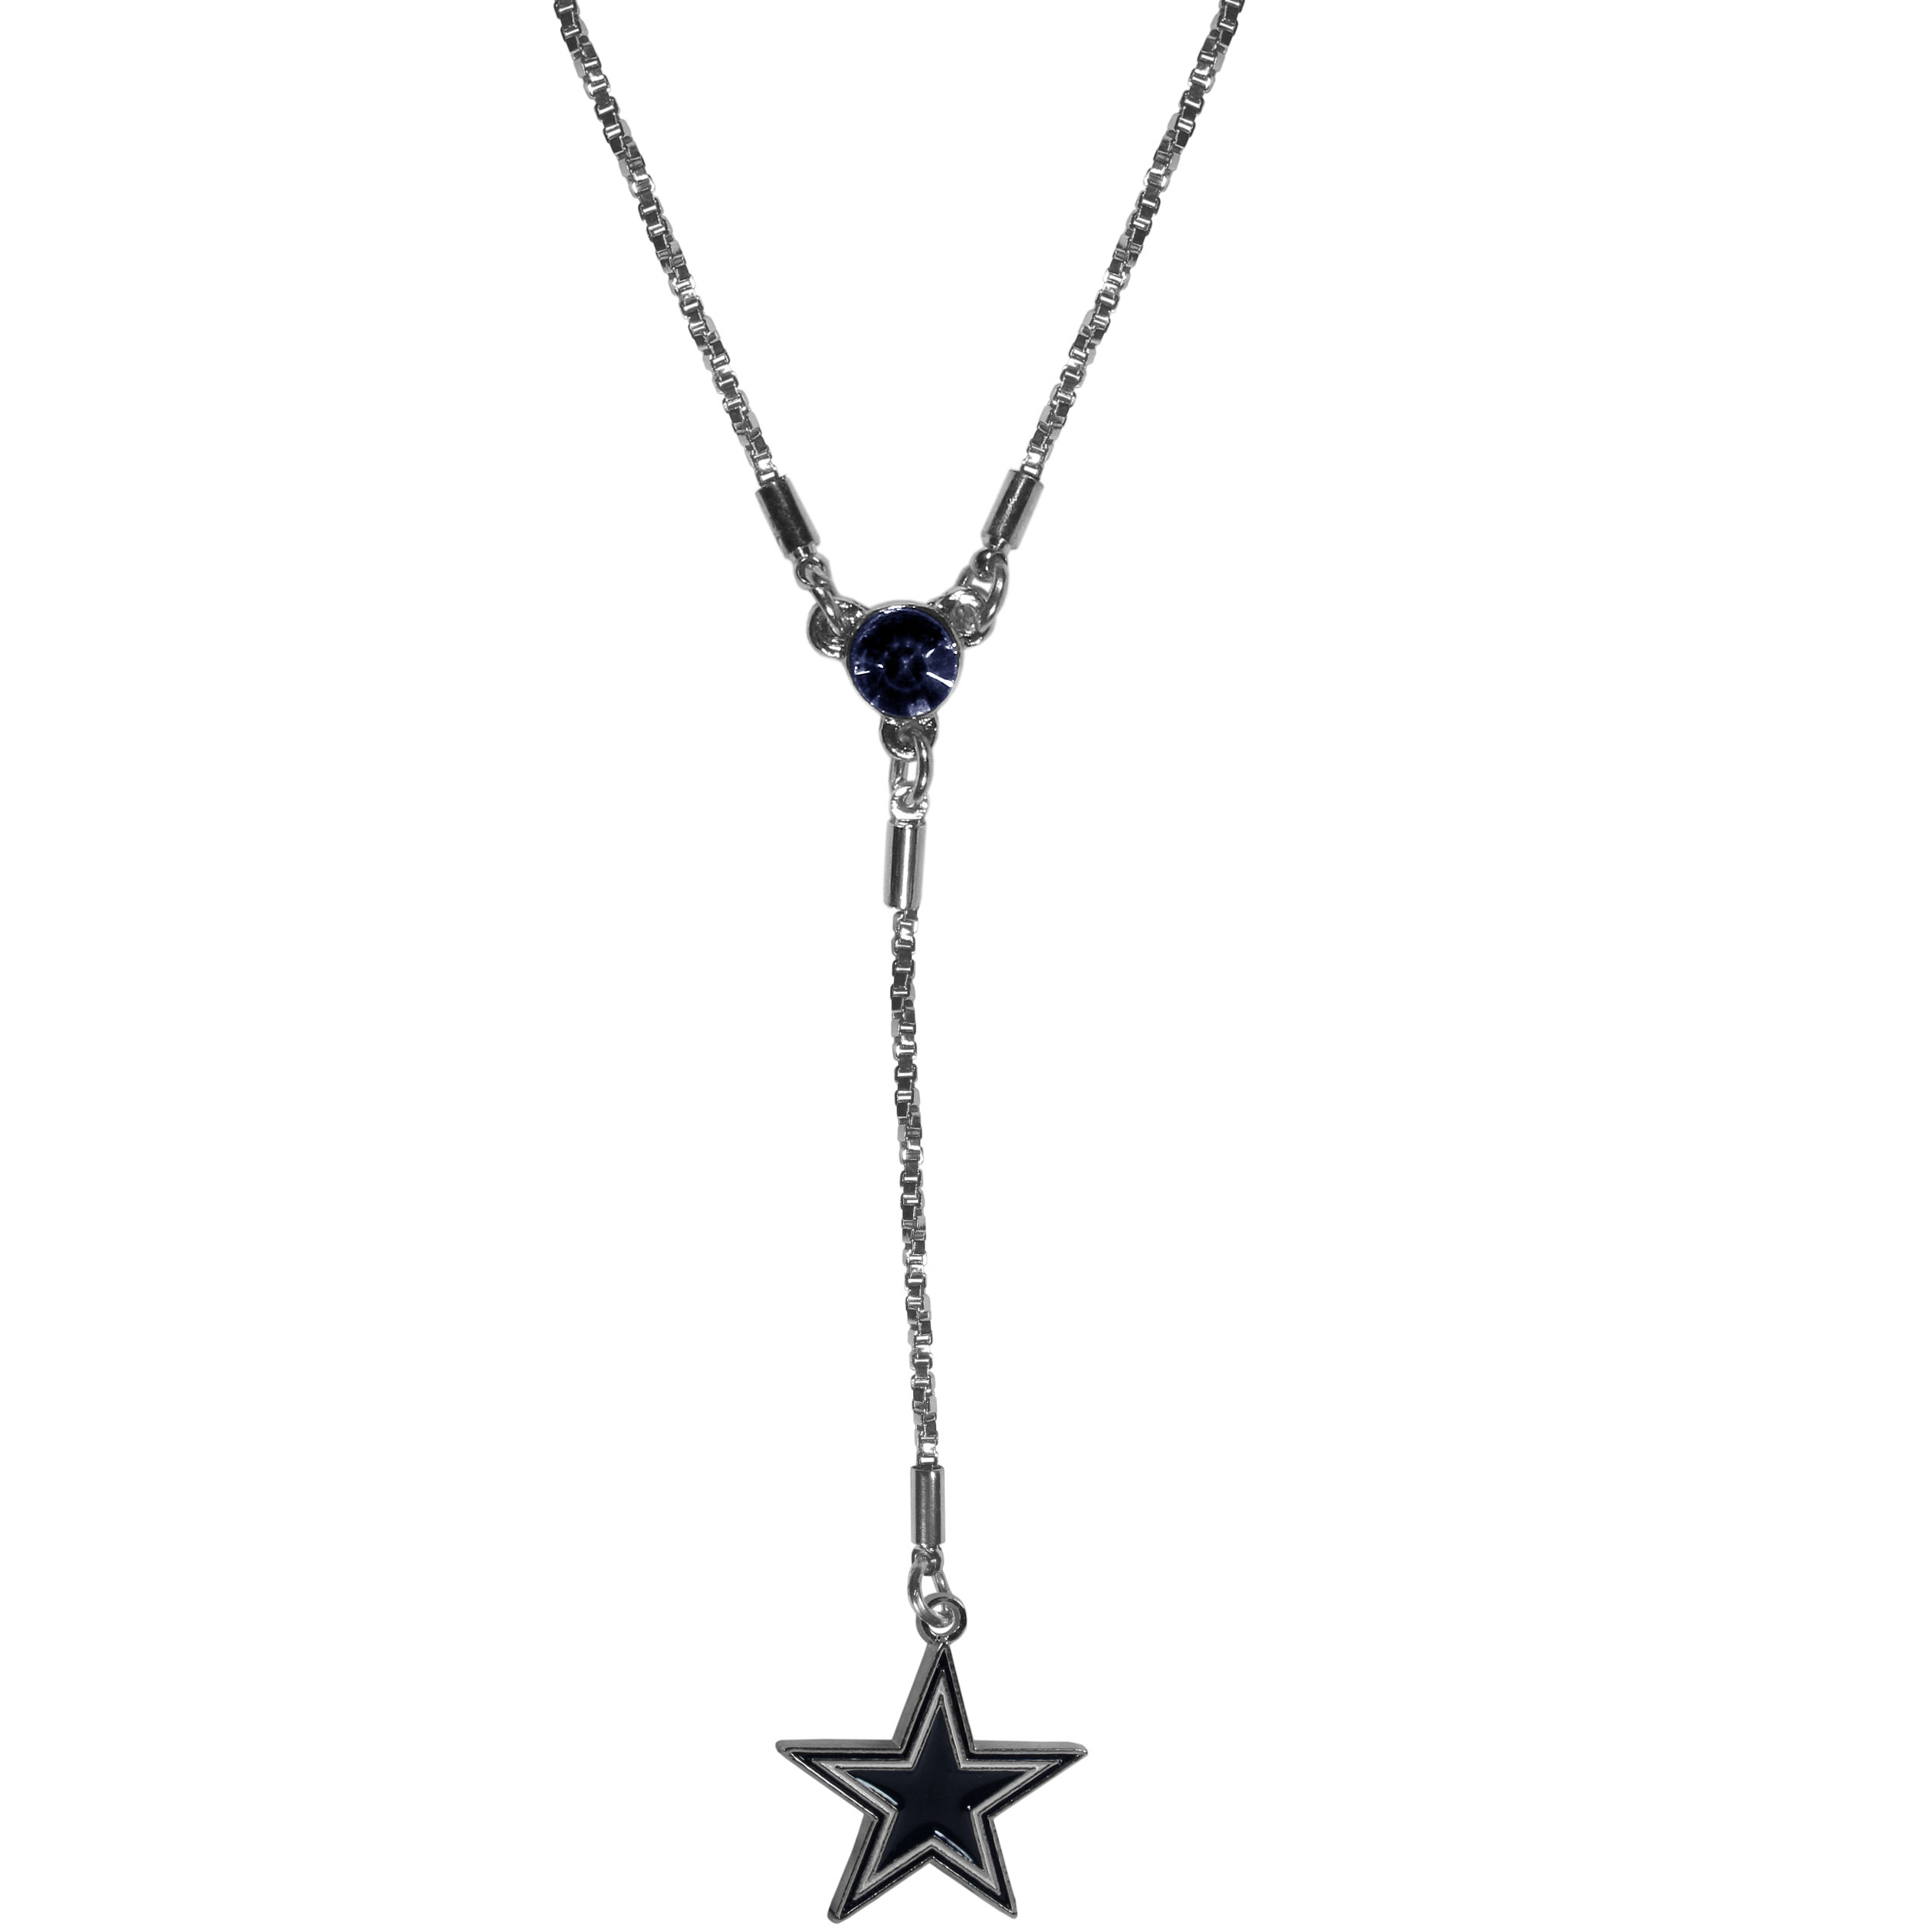 Dallas Cowboys Lariat Necklace - This designer look is a stylish version of the classic lariat necklace. The chic box chain is 16 inches long with a 2 inch extender, the Y drop features a large team colored crystal with an expertly carved team charm. This trendy look is a perfect blend of sporty and chic making is a mush-have fashion accessory for the fashion-forward Dallas Cowboys fan.